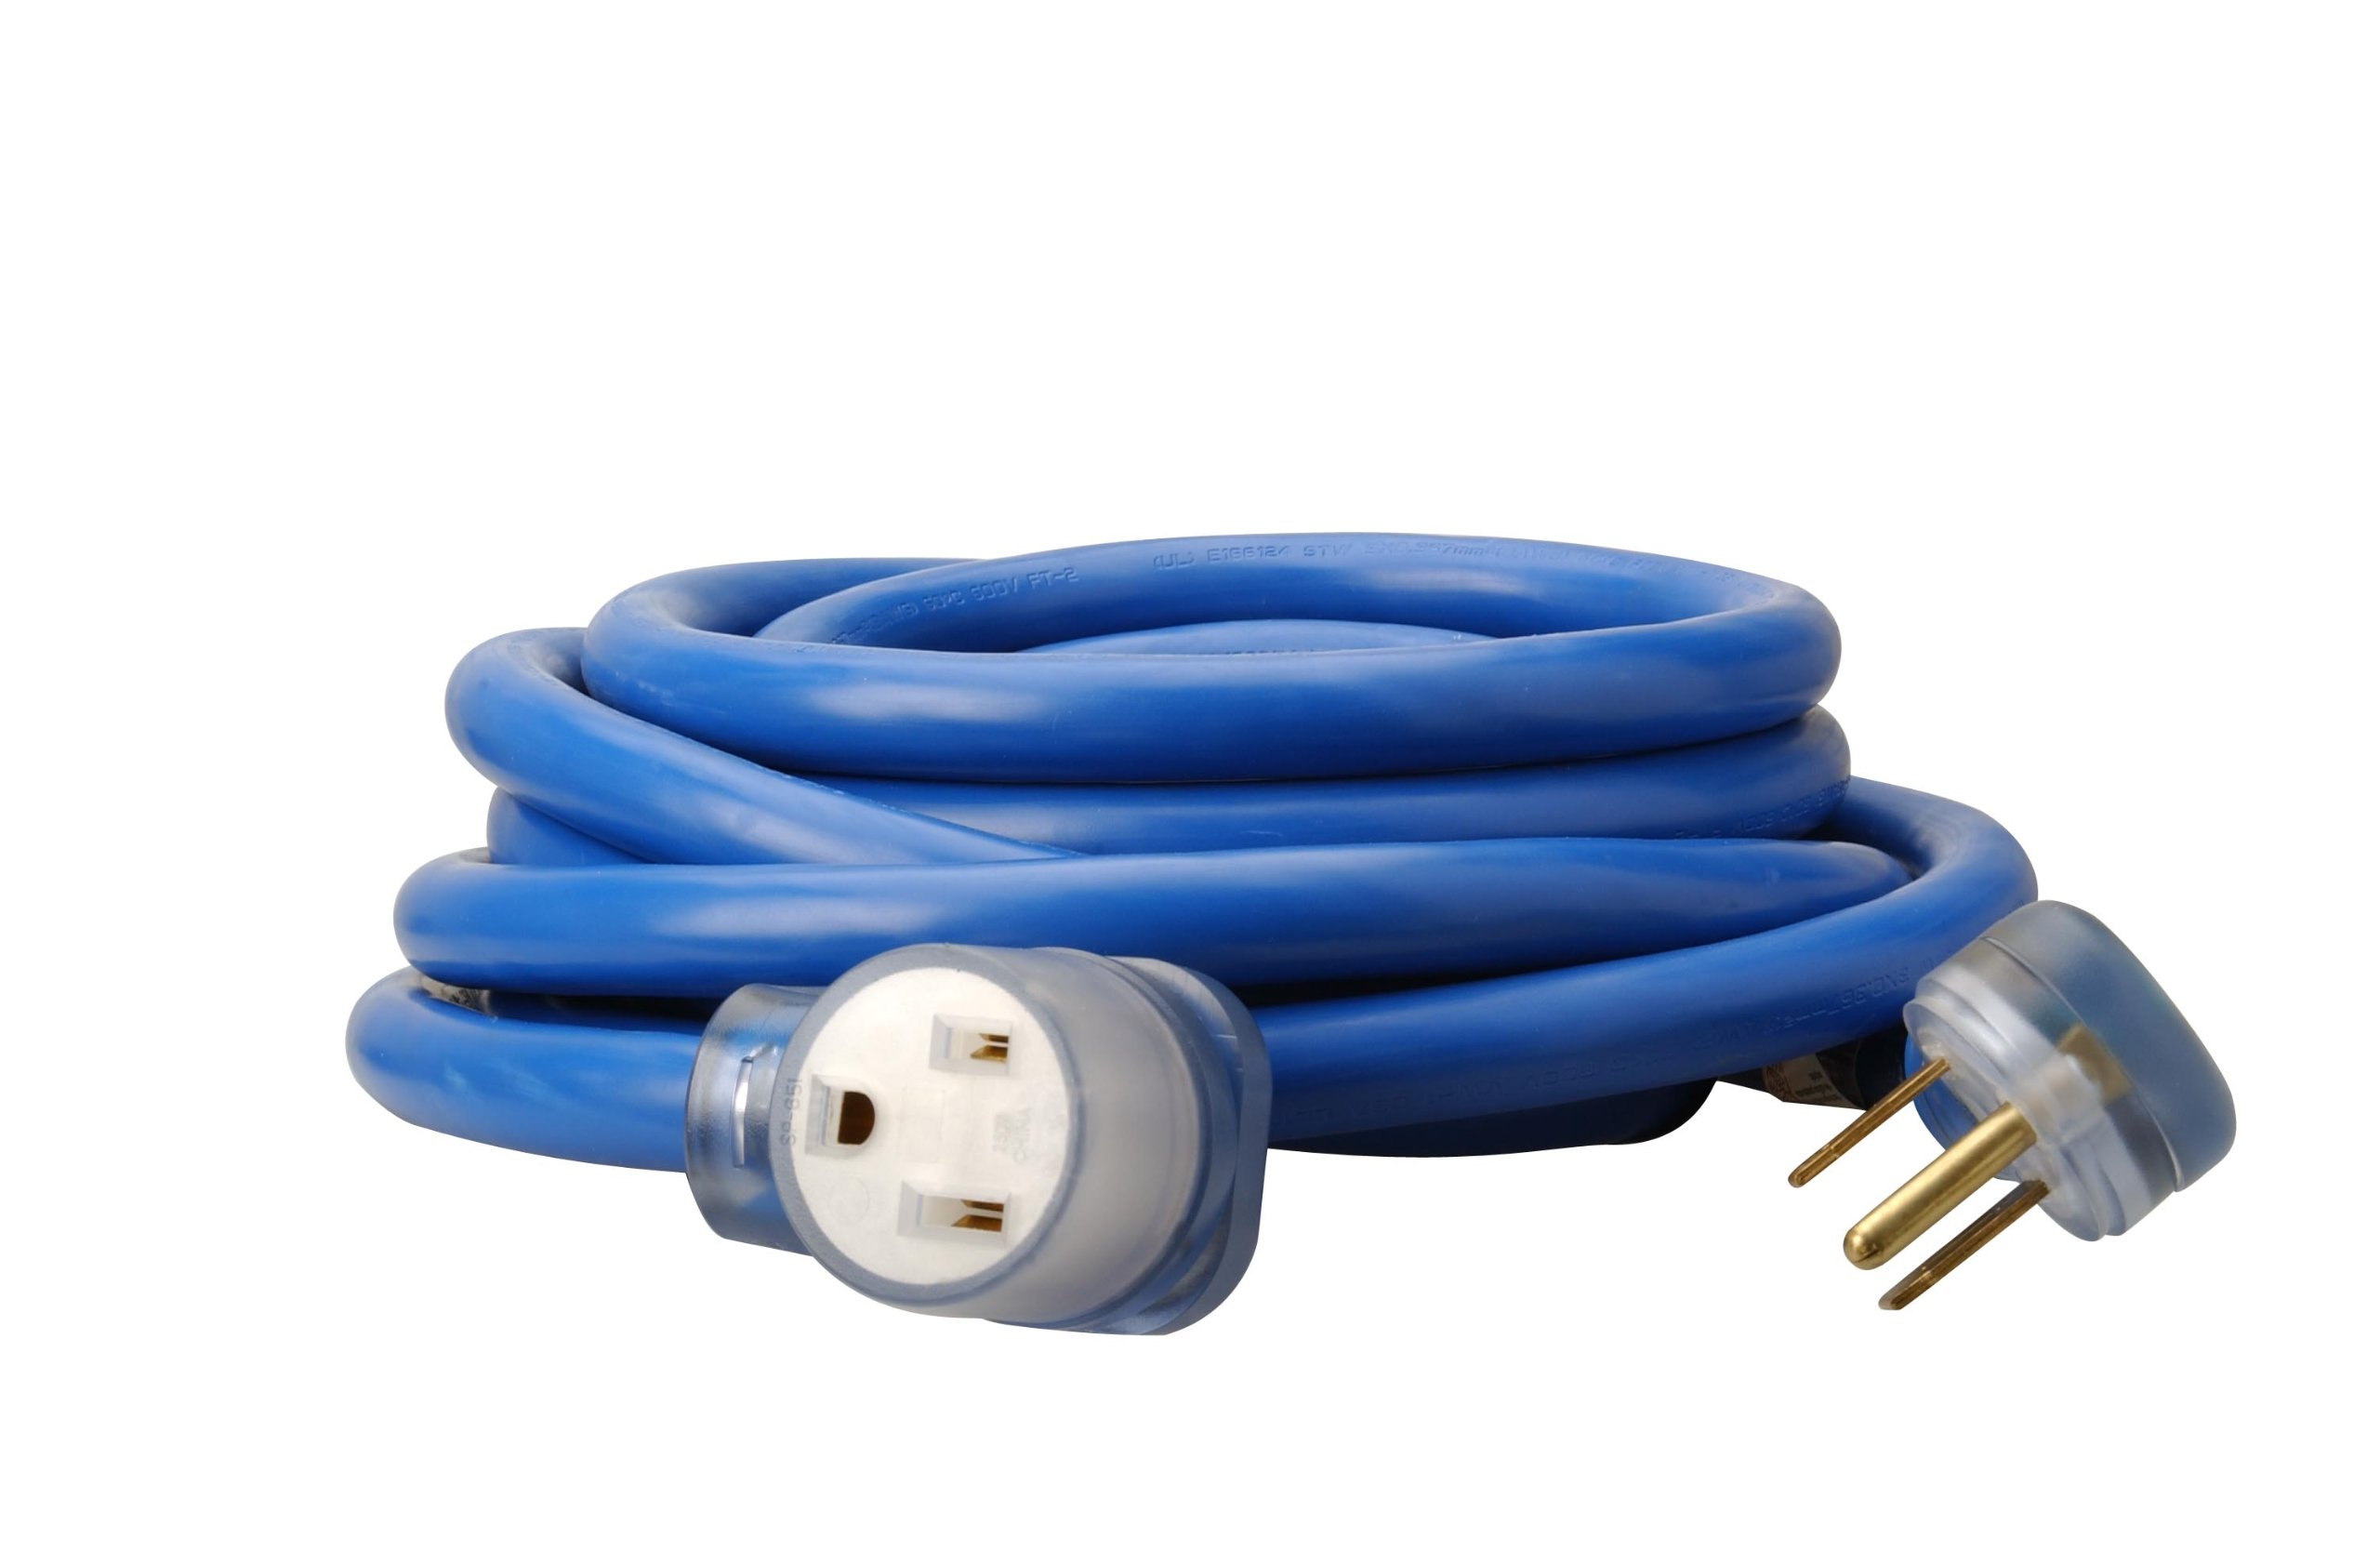 Coleman Cable 19178806 1917 8/3 STW 6-50 Welder Extension Cord With 3-Prong Plug In Blue (25-Foot, 8/3 Gauge)